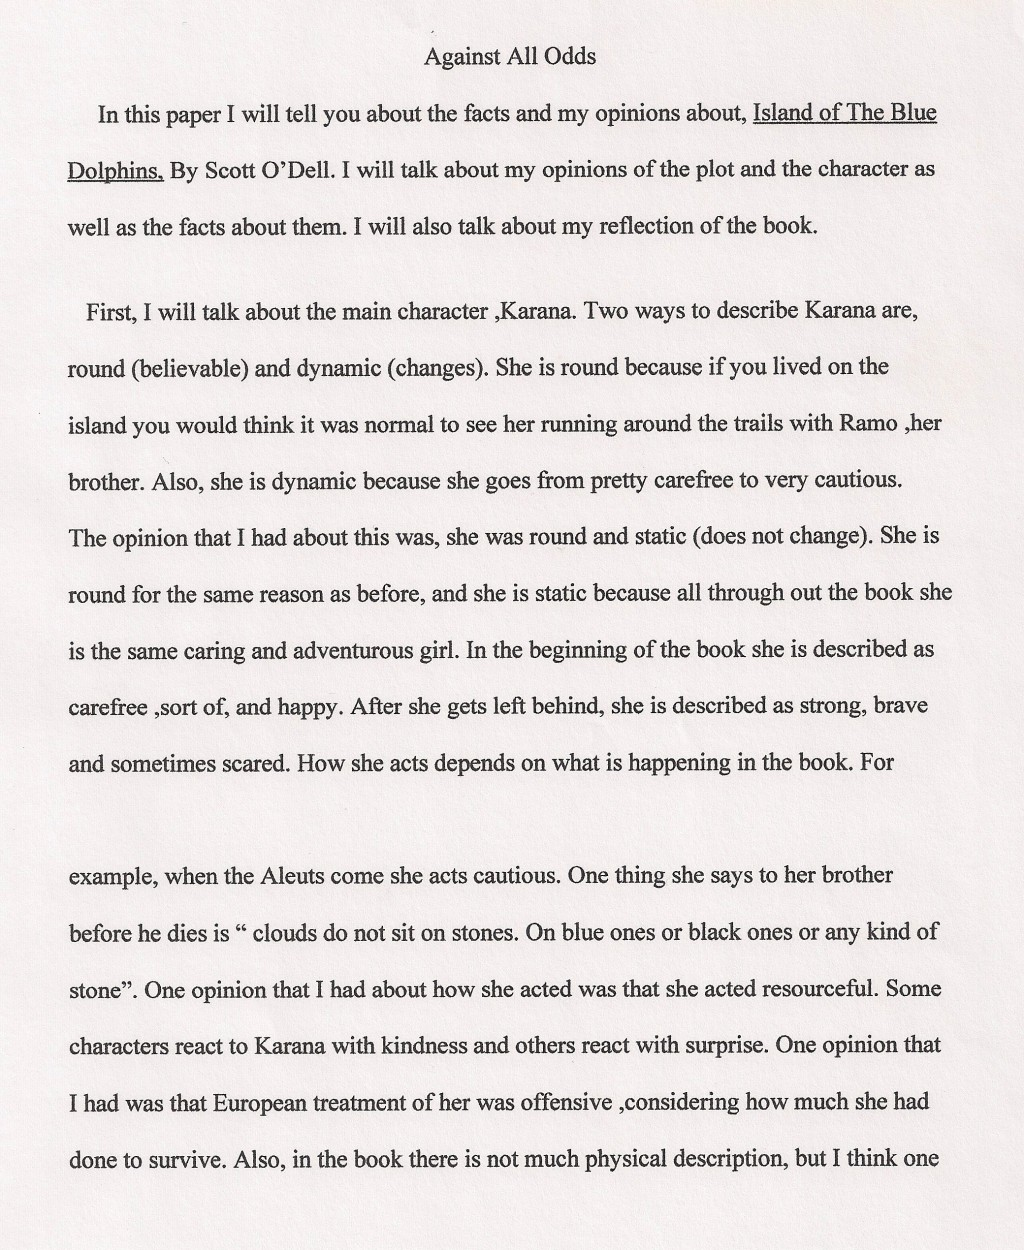 010 Against All Odds Expository Essay Samples Impressive Theme Examples High School For 7th Grade Large